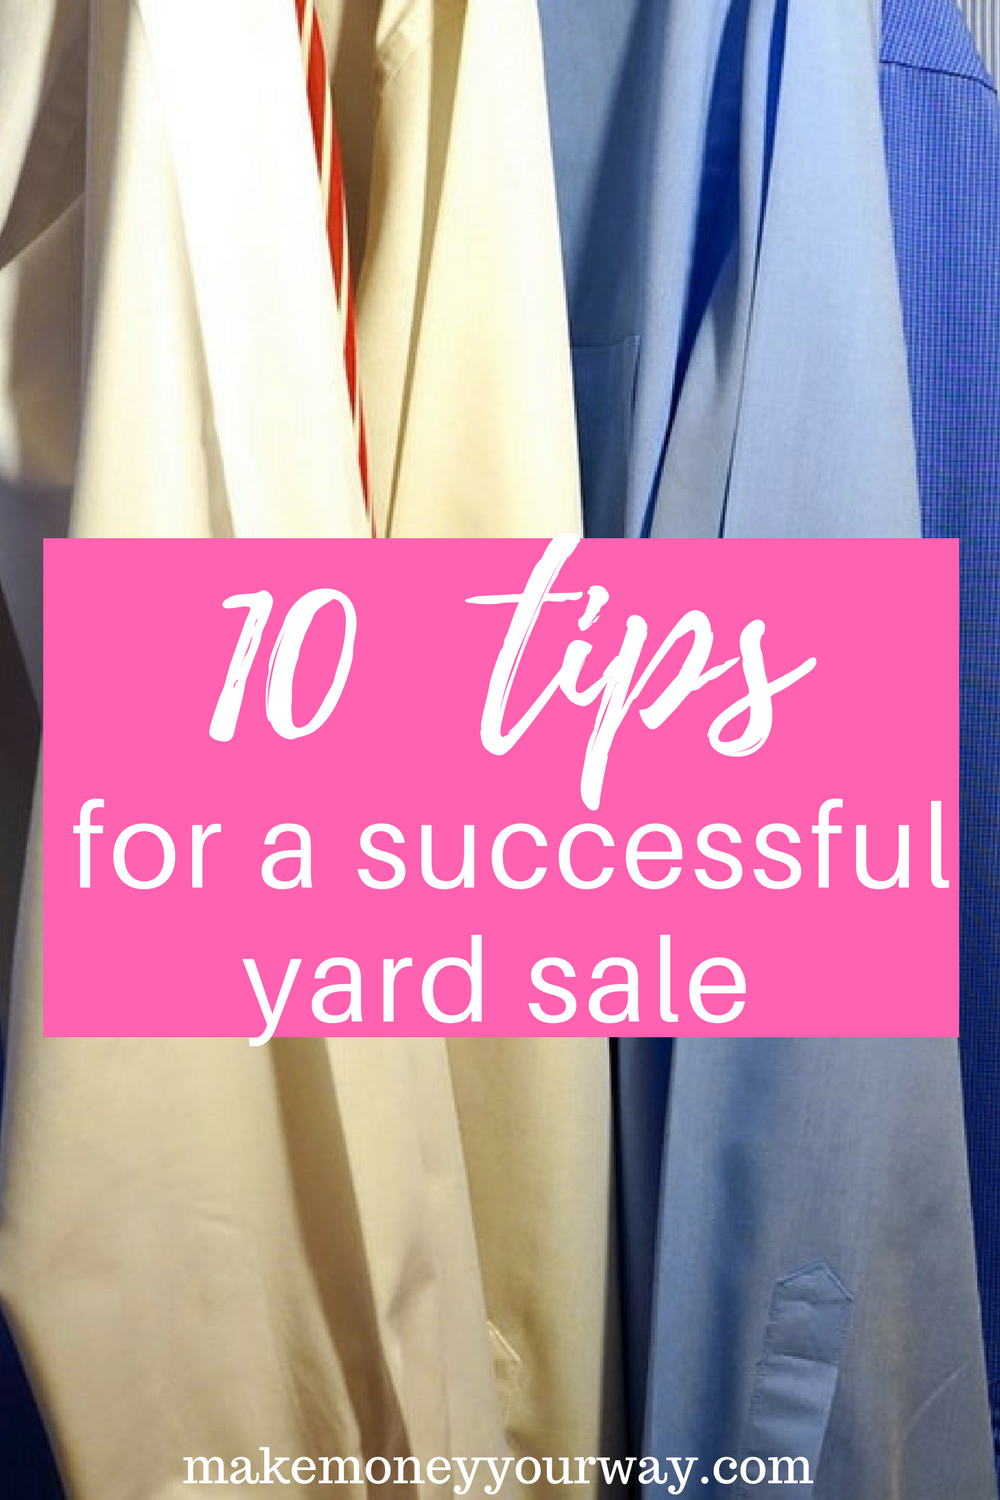 10 tips for a successful yard sale